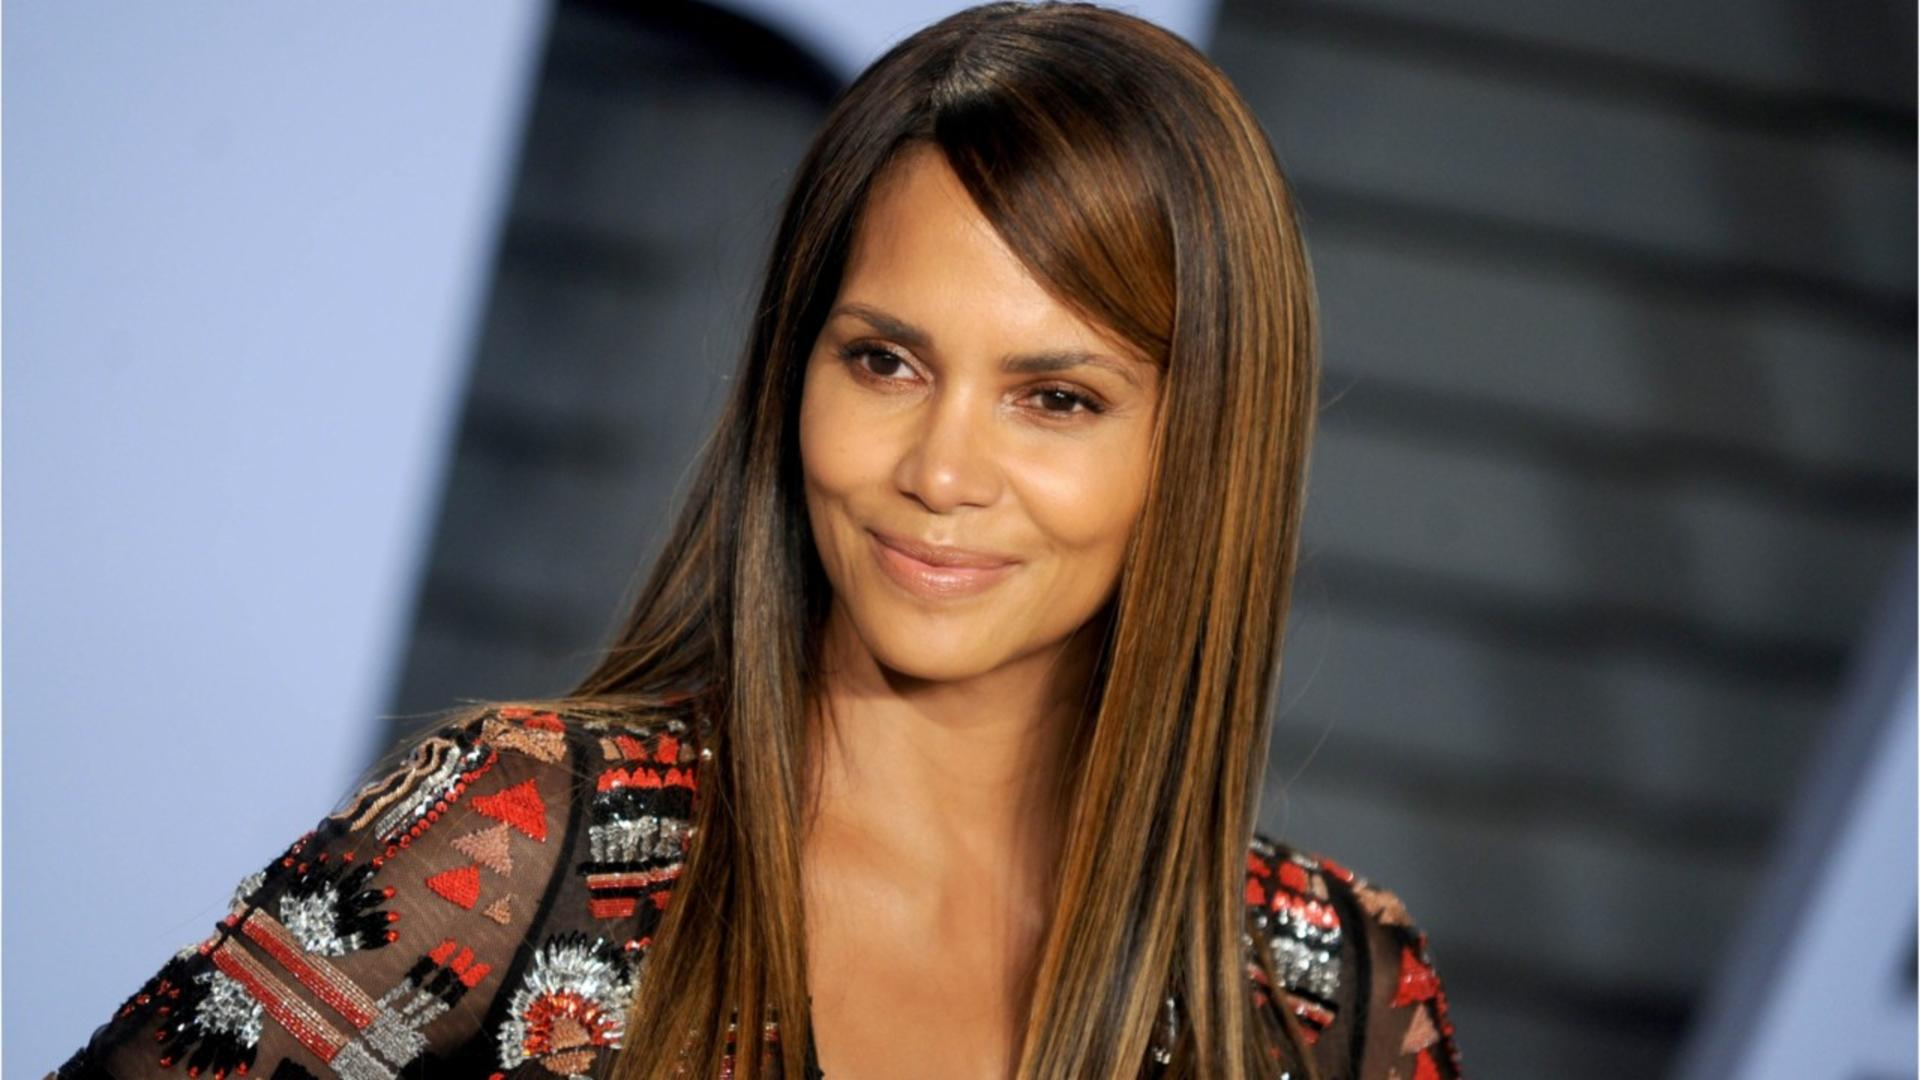 Halle Berry's complete style transformation